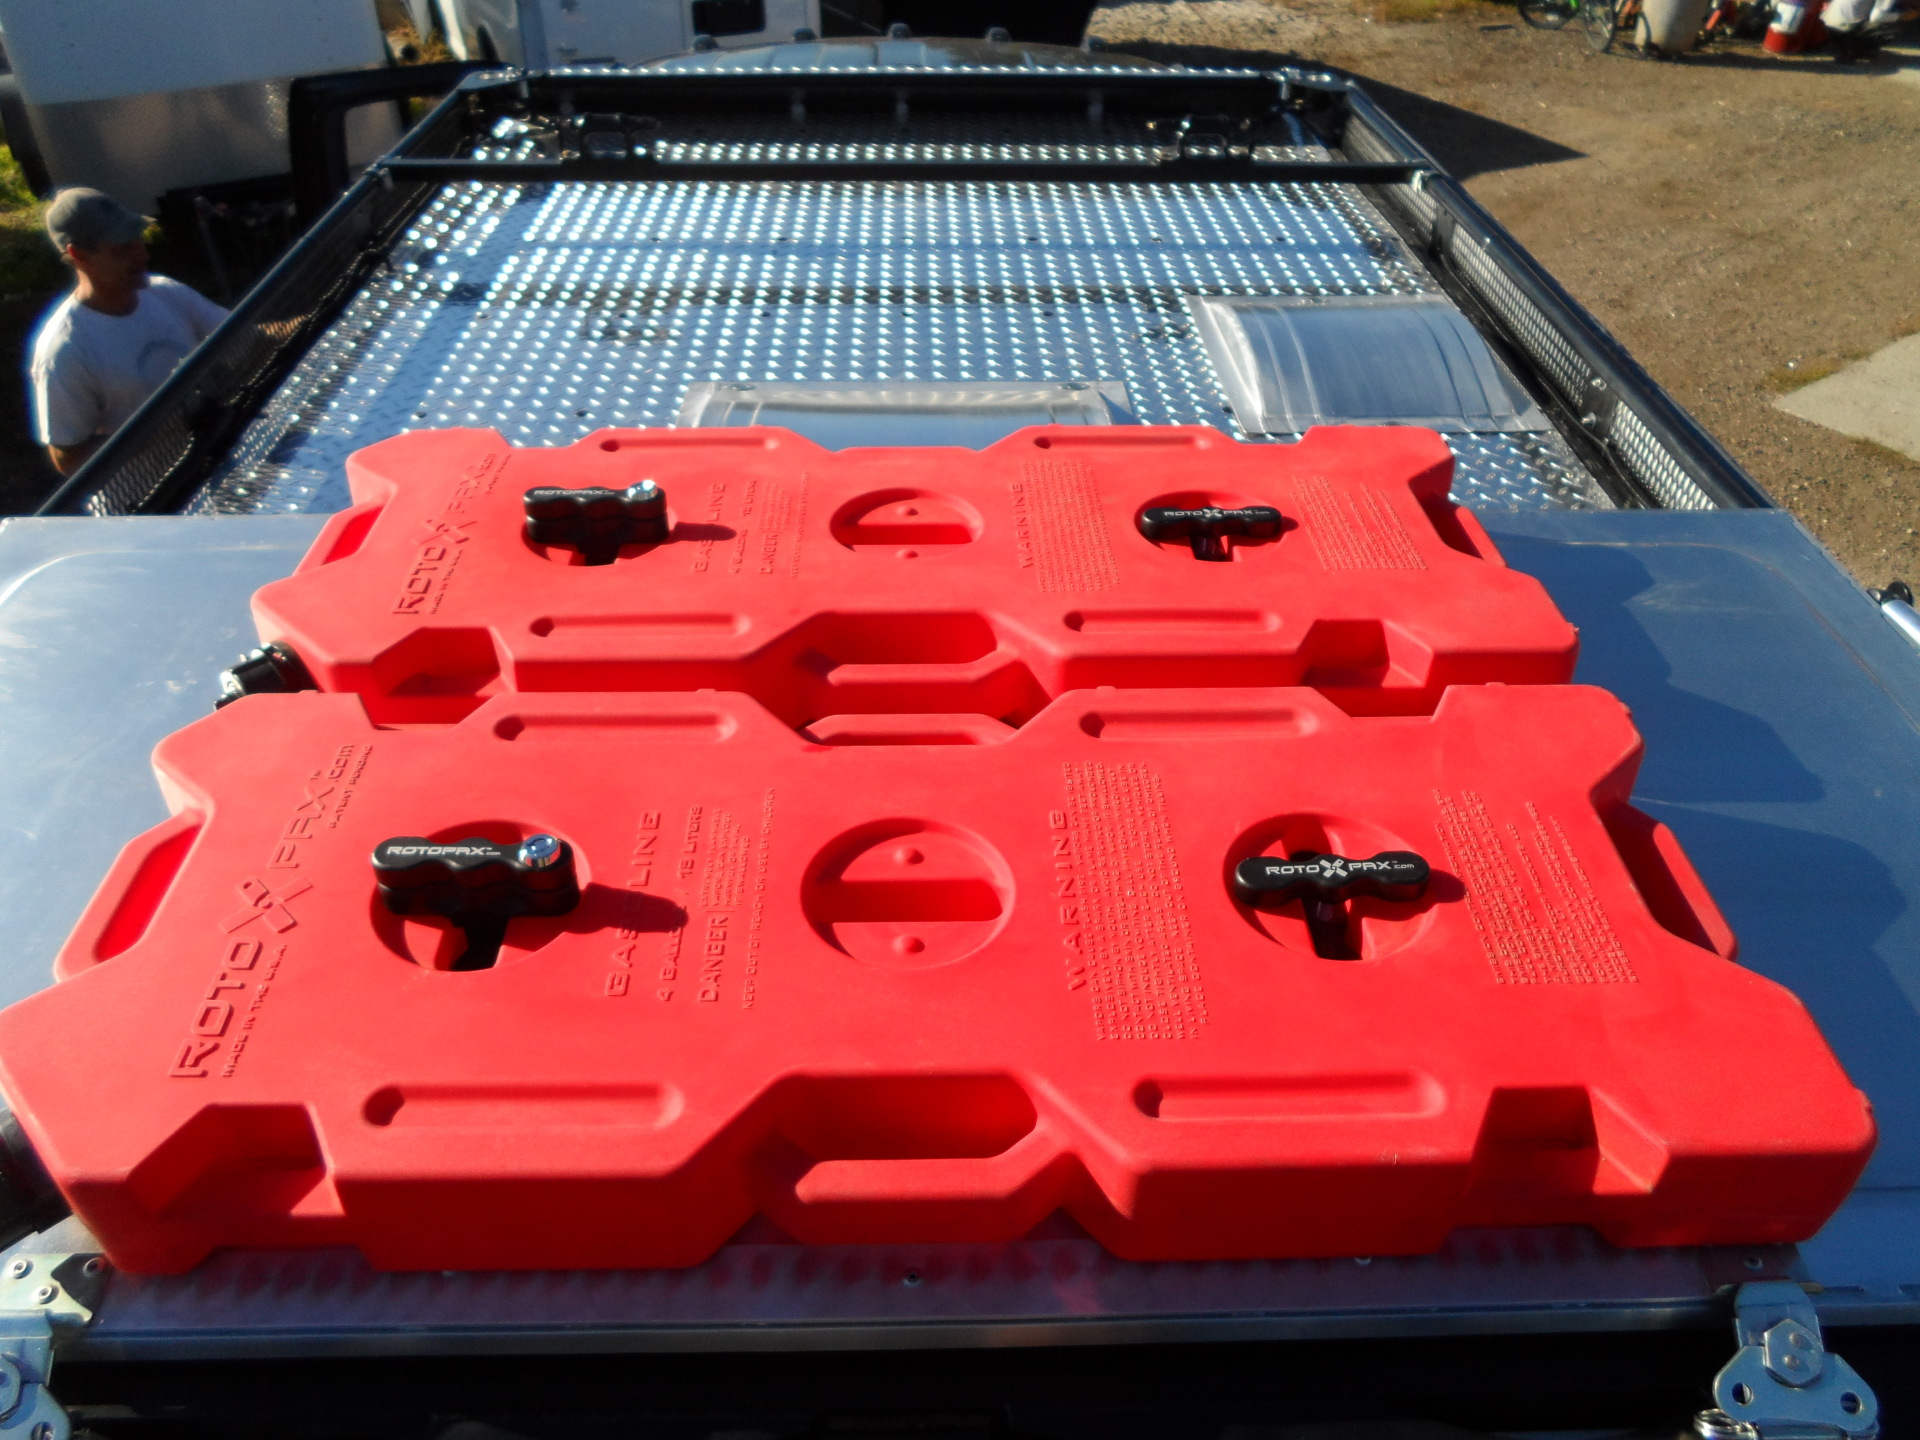 Chevy Express Roof rack with Rotopax and custom solar panel mounts